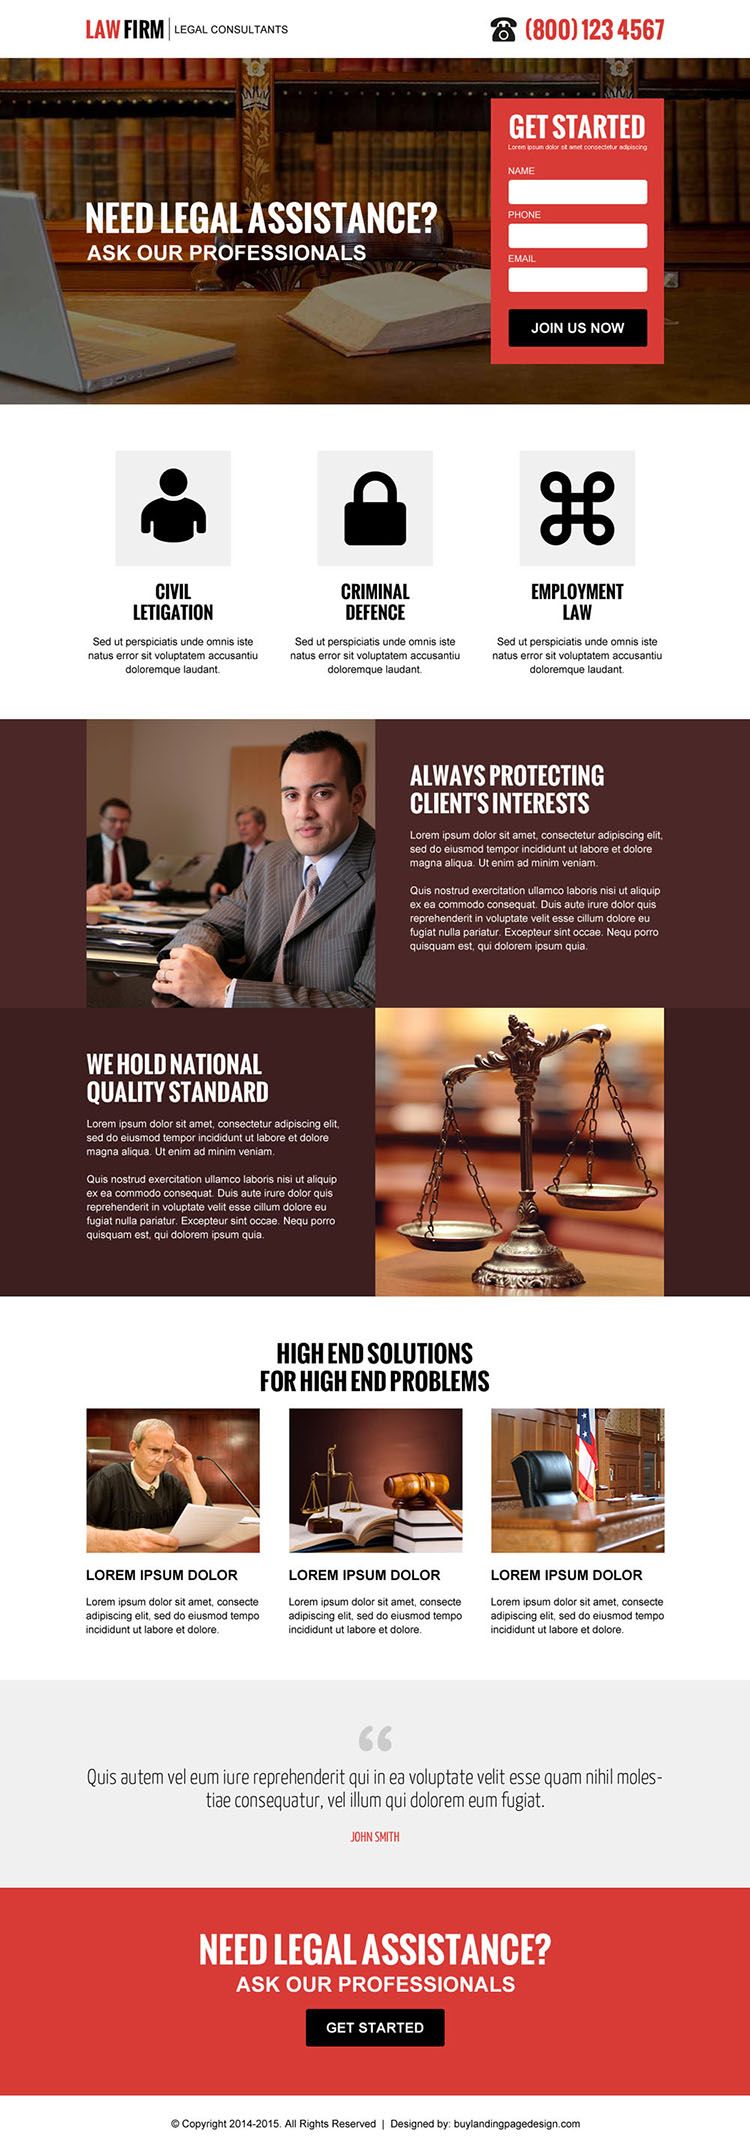 law firm clean and professional lead capture landing page design